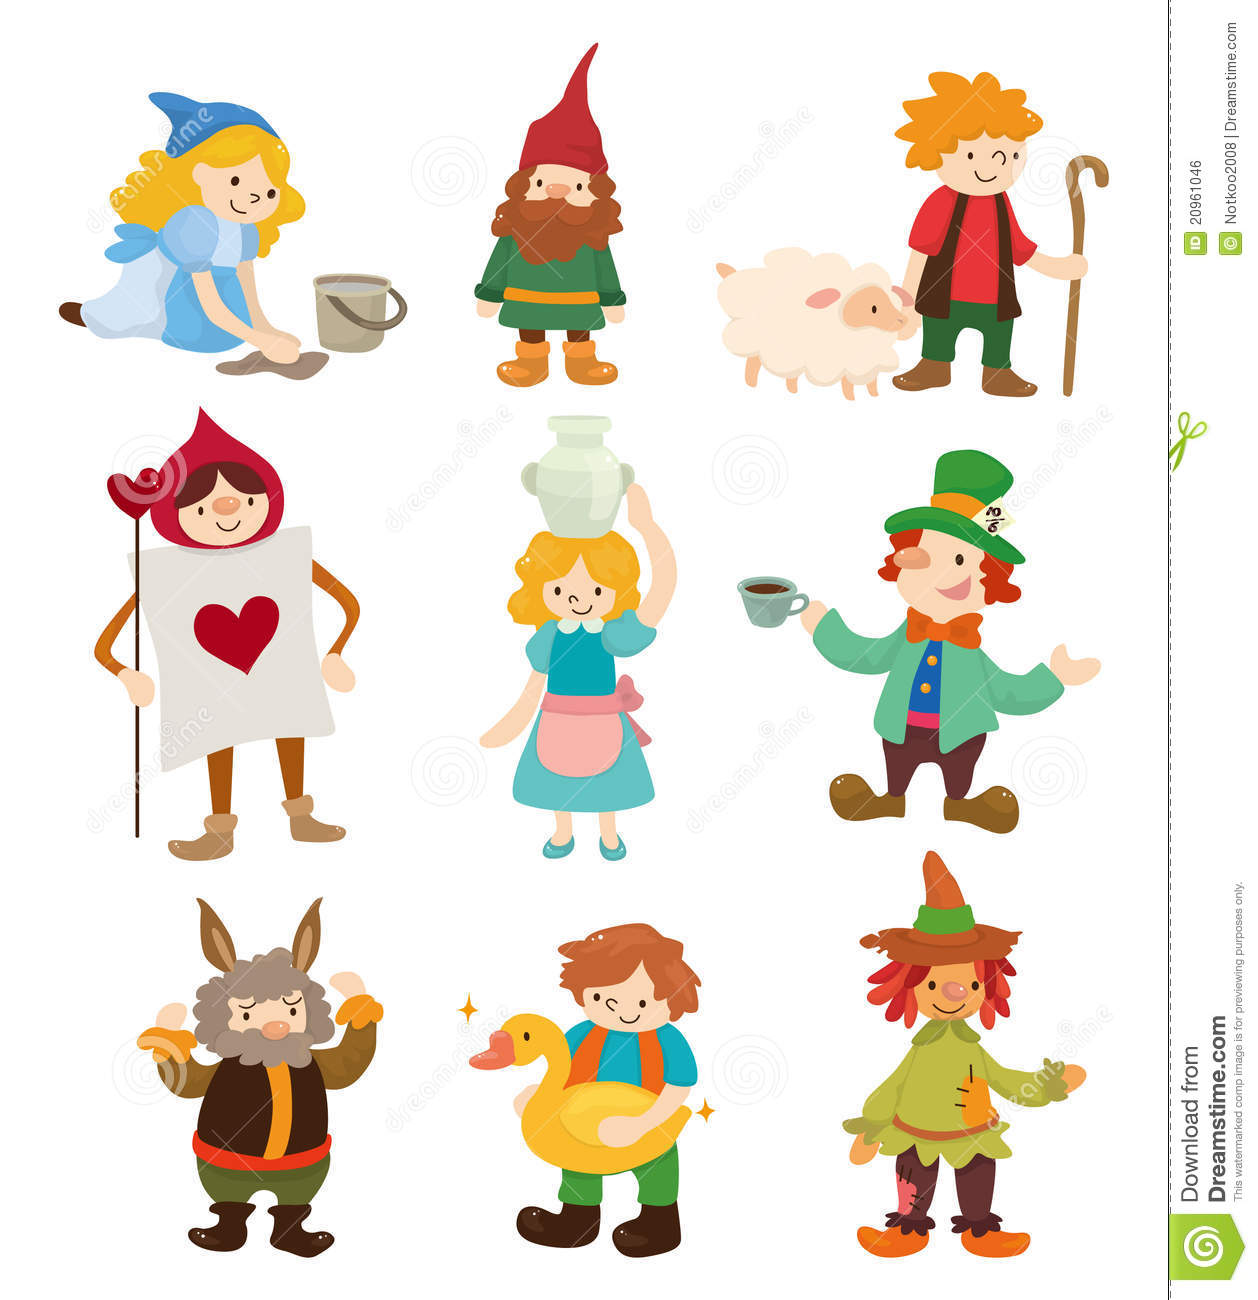 Cartoon Story People Icons Royalty Free Stock Image   Image  20961046